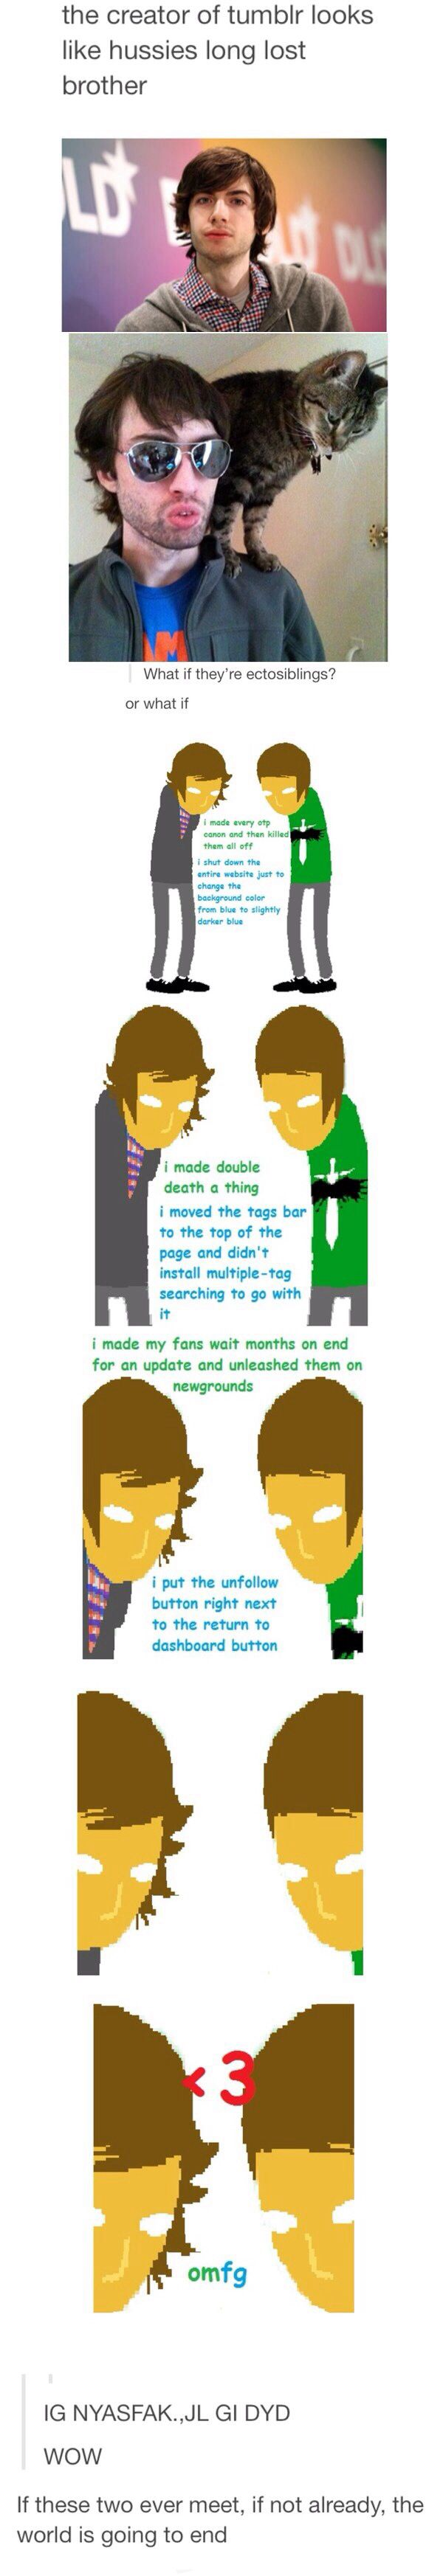 ((Yes. I ship Andrew Hussie and the tumblr guy. It's so perfect.))